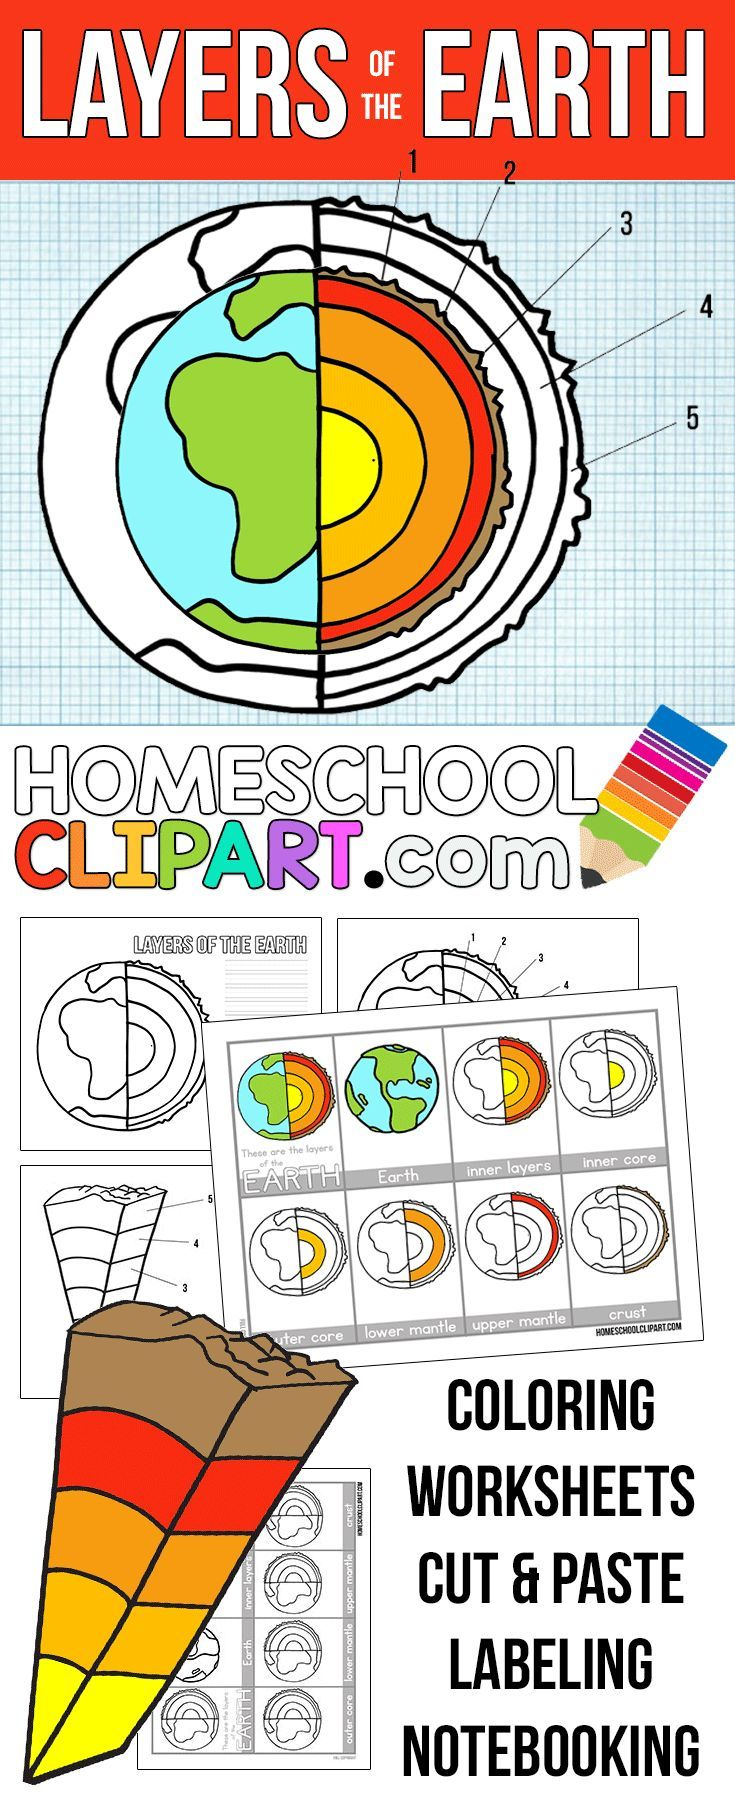 notebooking pages science journal nomenclature cards labeling worksheet charts coloring pages even the clipart to make your own resources  [ 735 x 1800 Pixel ]